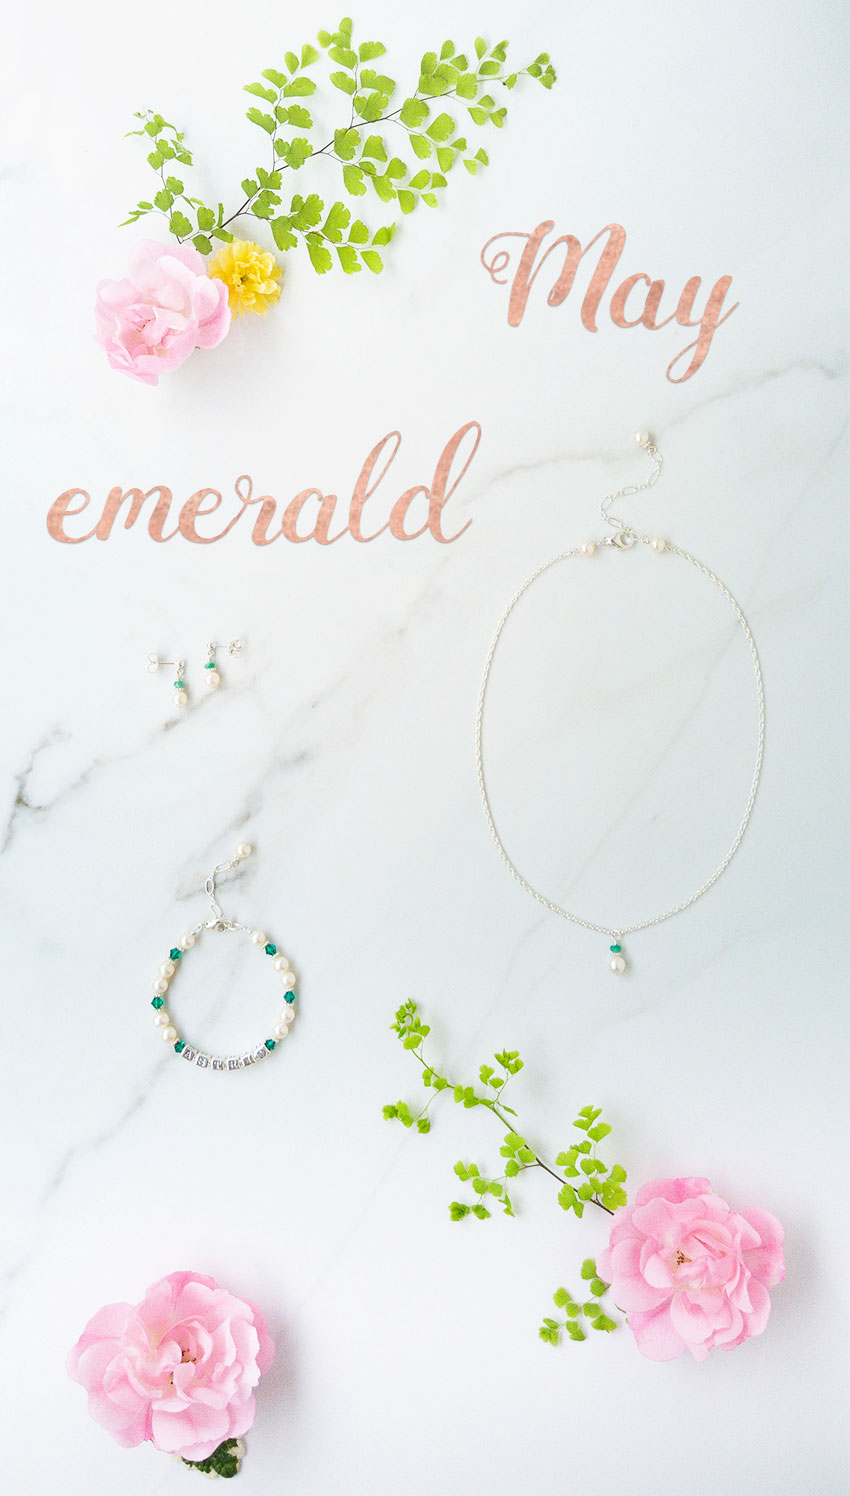 May's birthstone jewelry - emerald mixed with pearls and pink roses.